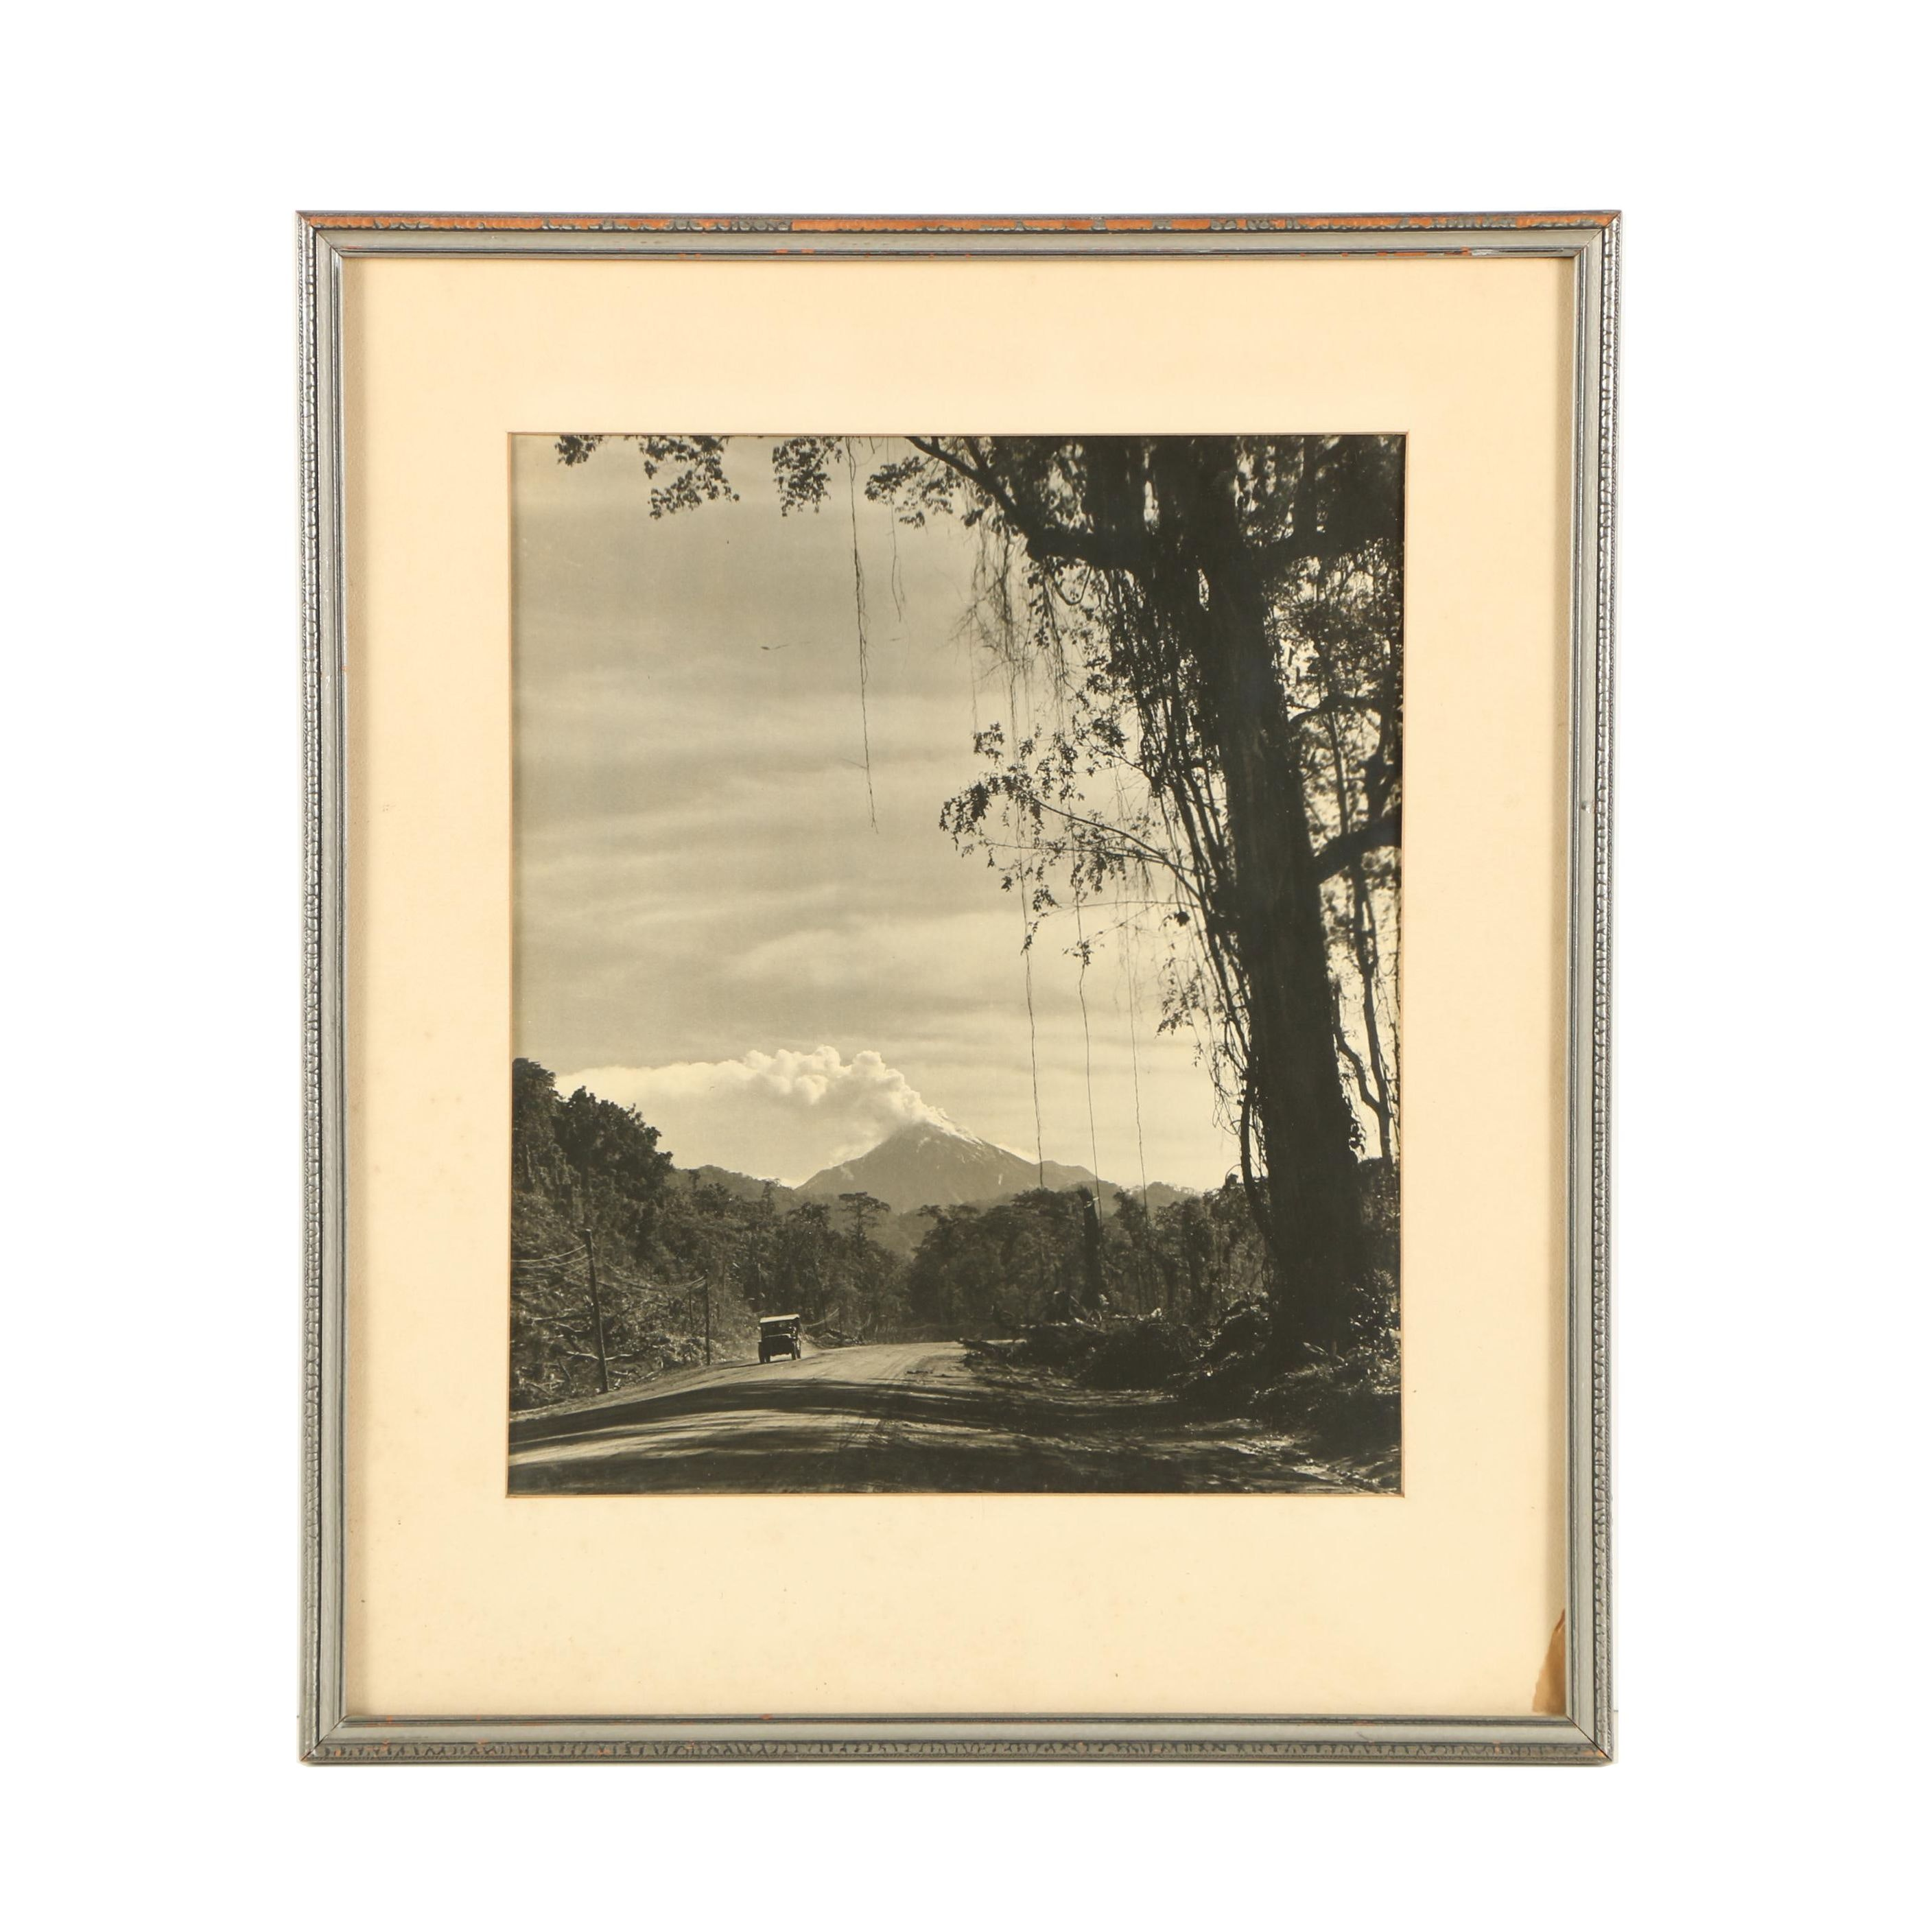 Black and White Photograph of a Dirt Road